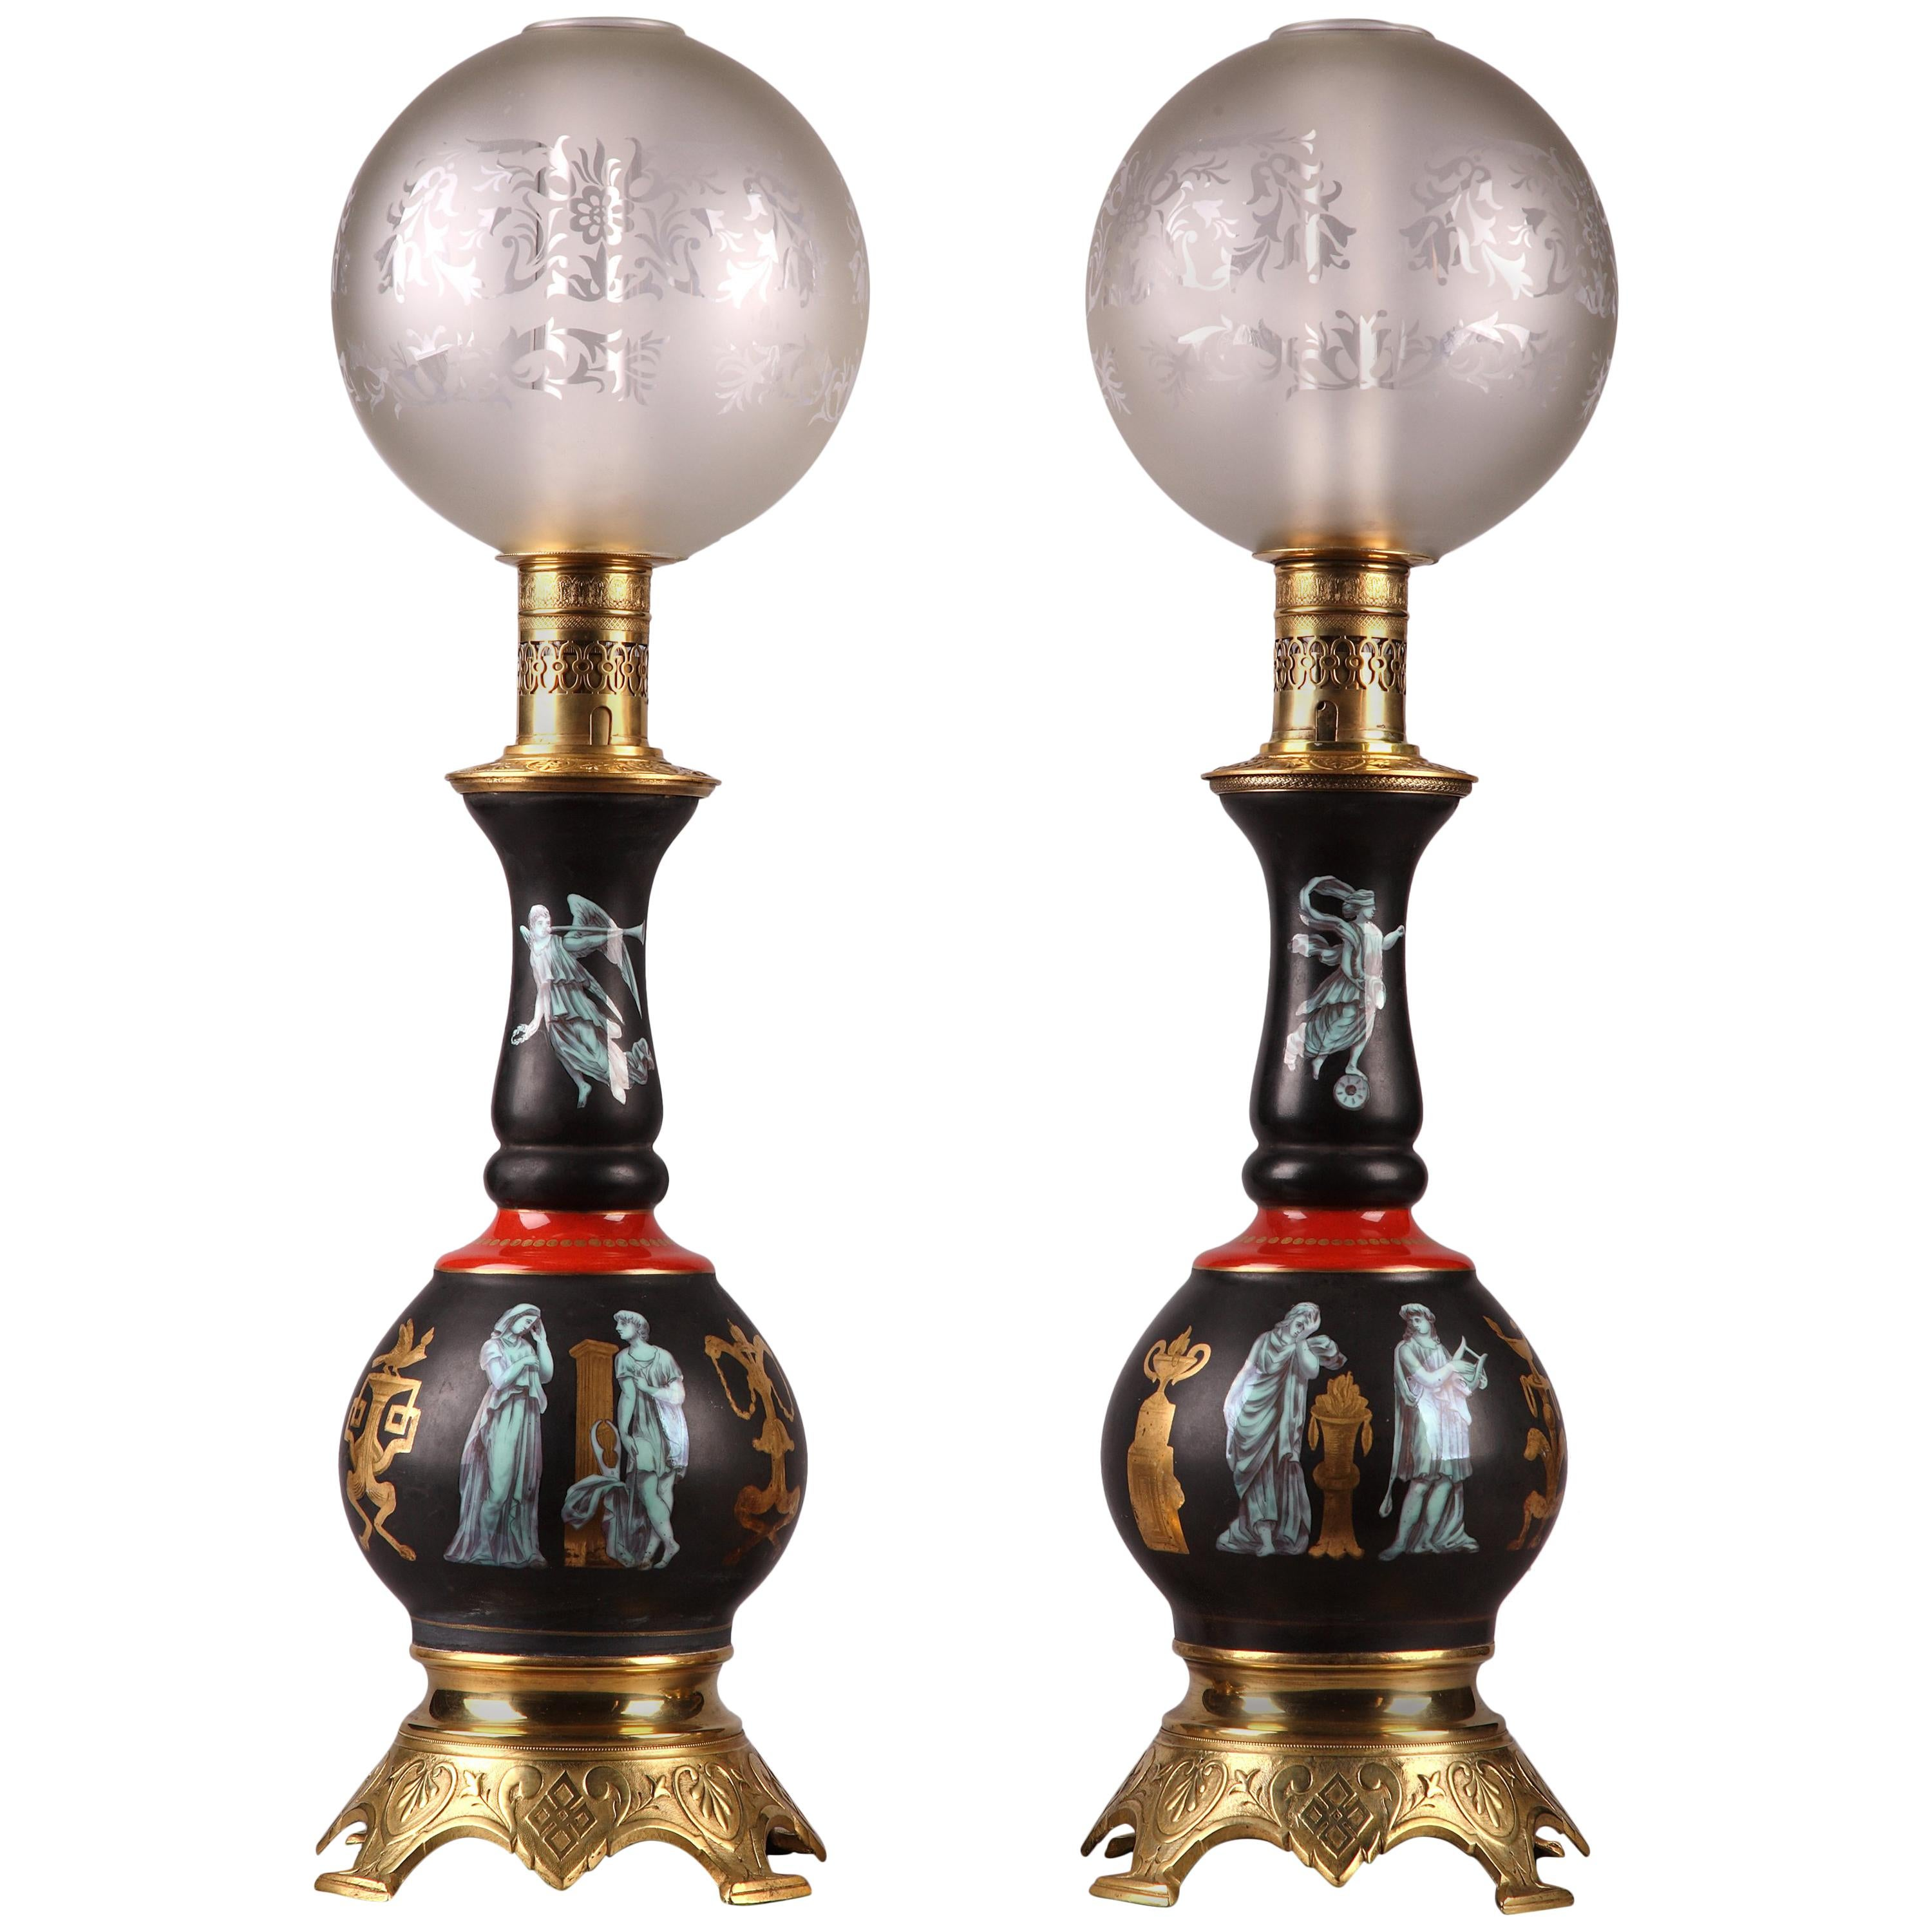 Fine Pair of Gilded Bronze and Black Mounted Porcelain Pompeian Style Lamps